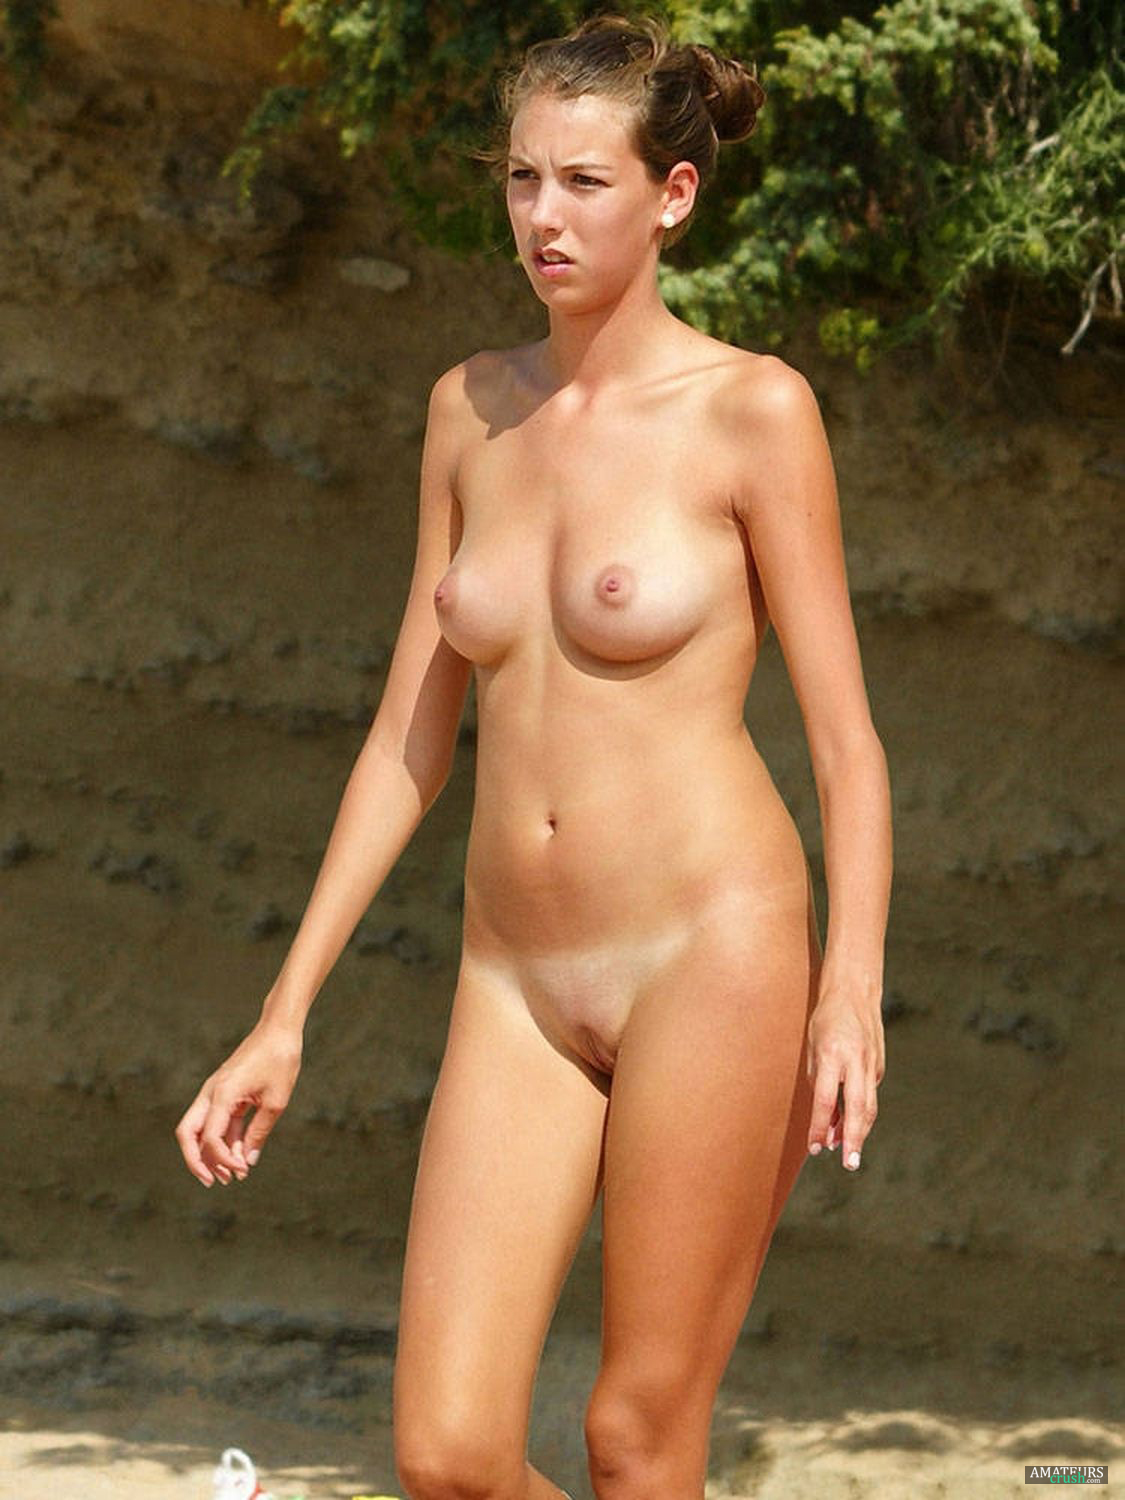 nude beach pic - 38 amazing beach nudes - amateurscrush